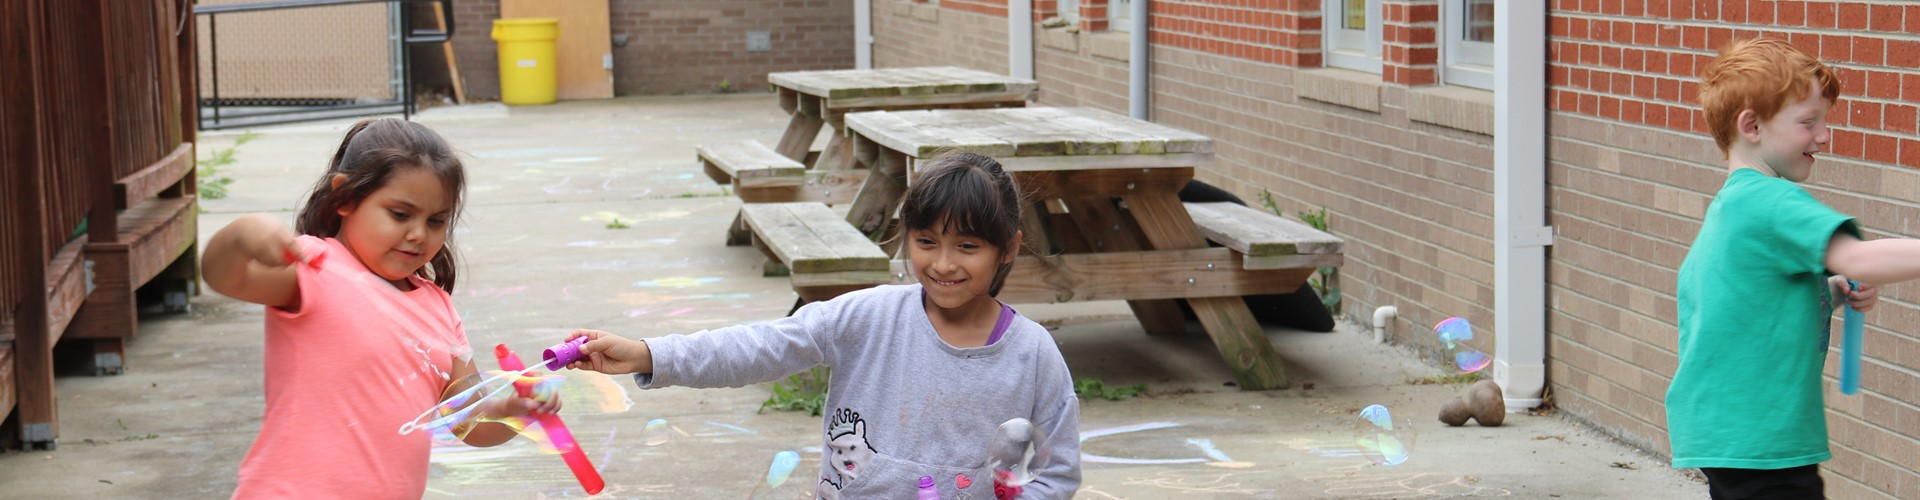 Three KWP students create bubbles with bubble wands.